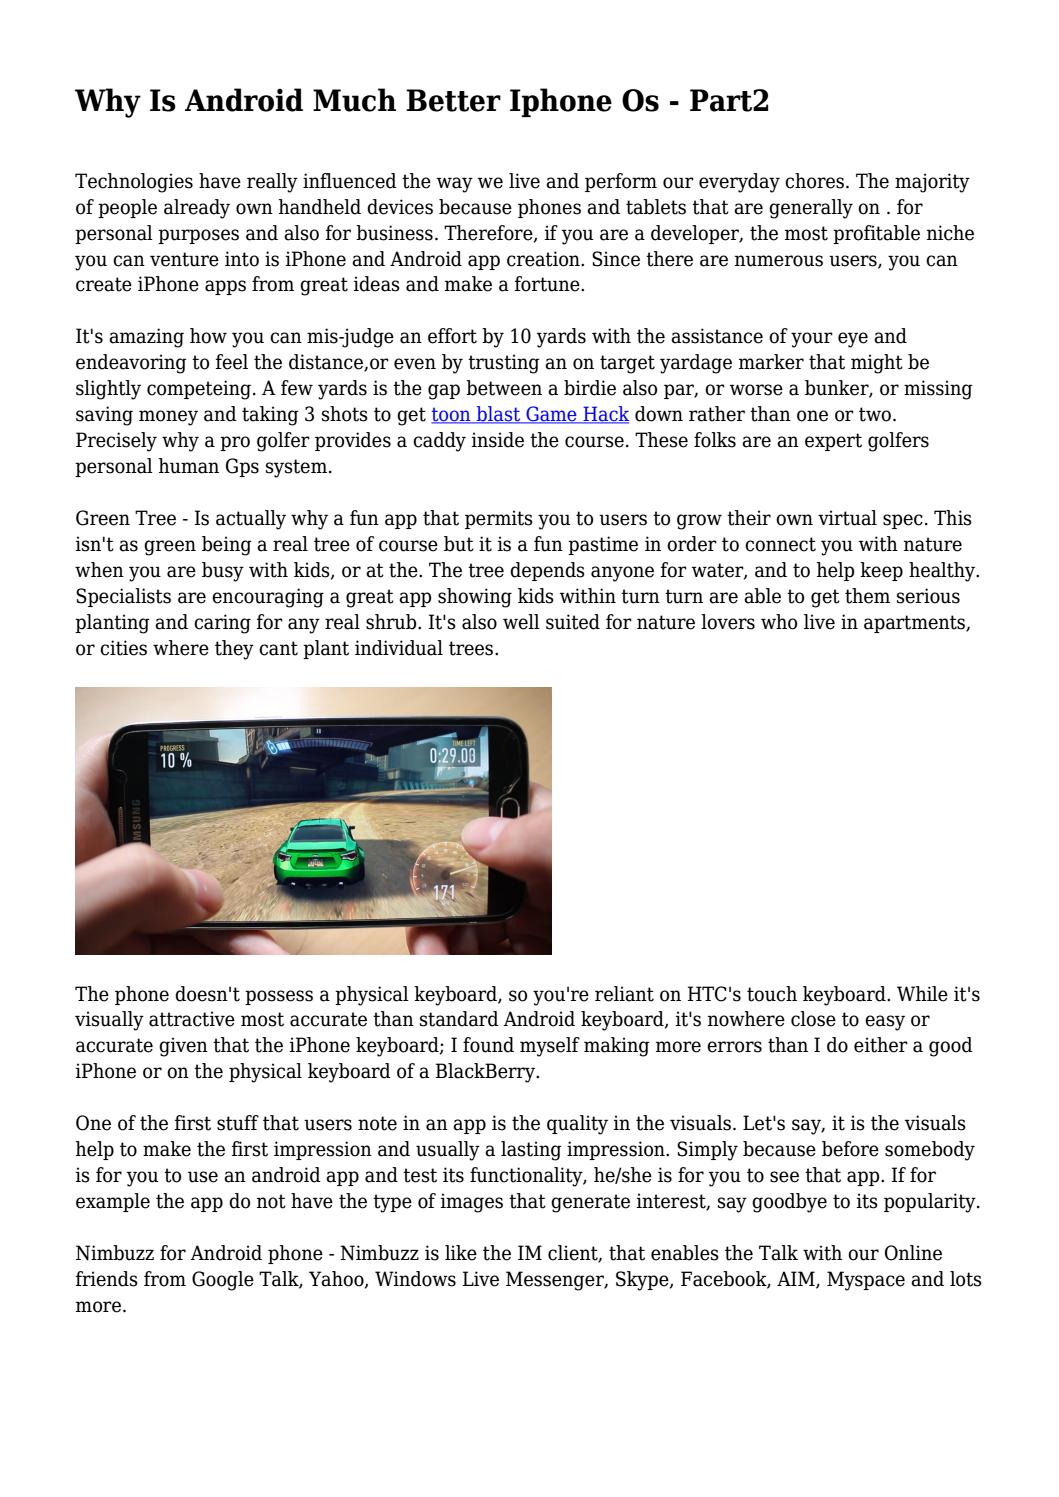 Why Is Android Much Better Iphone Os - Part2 by cleangadgetlabs - issuu